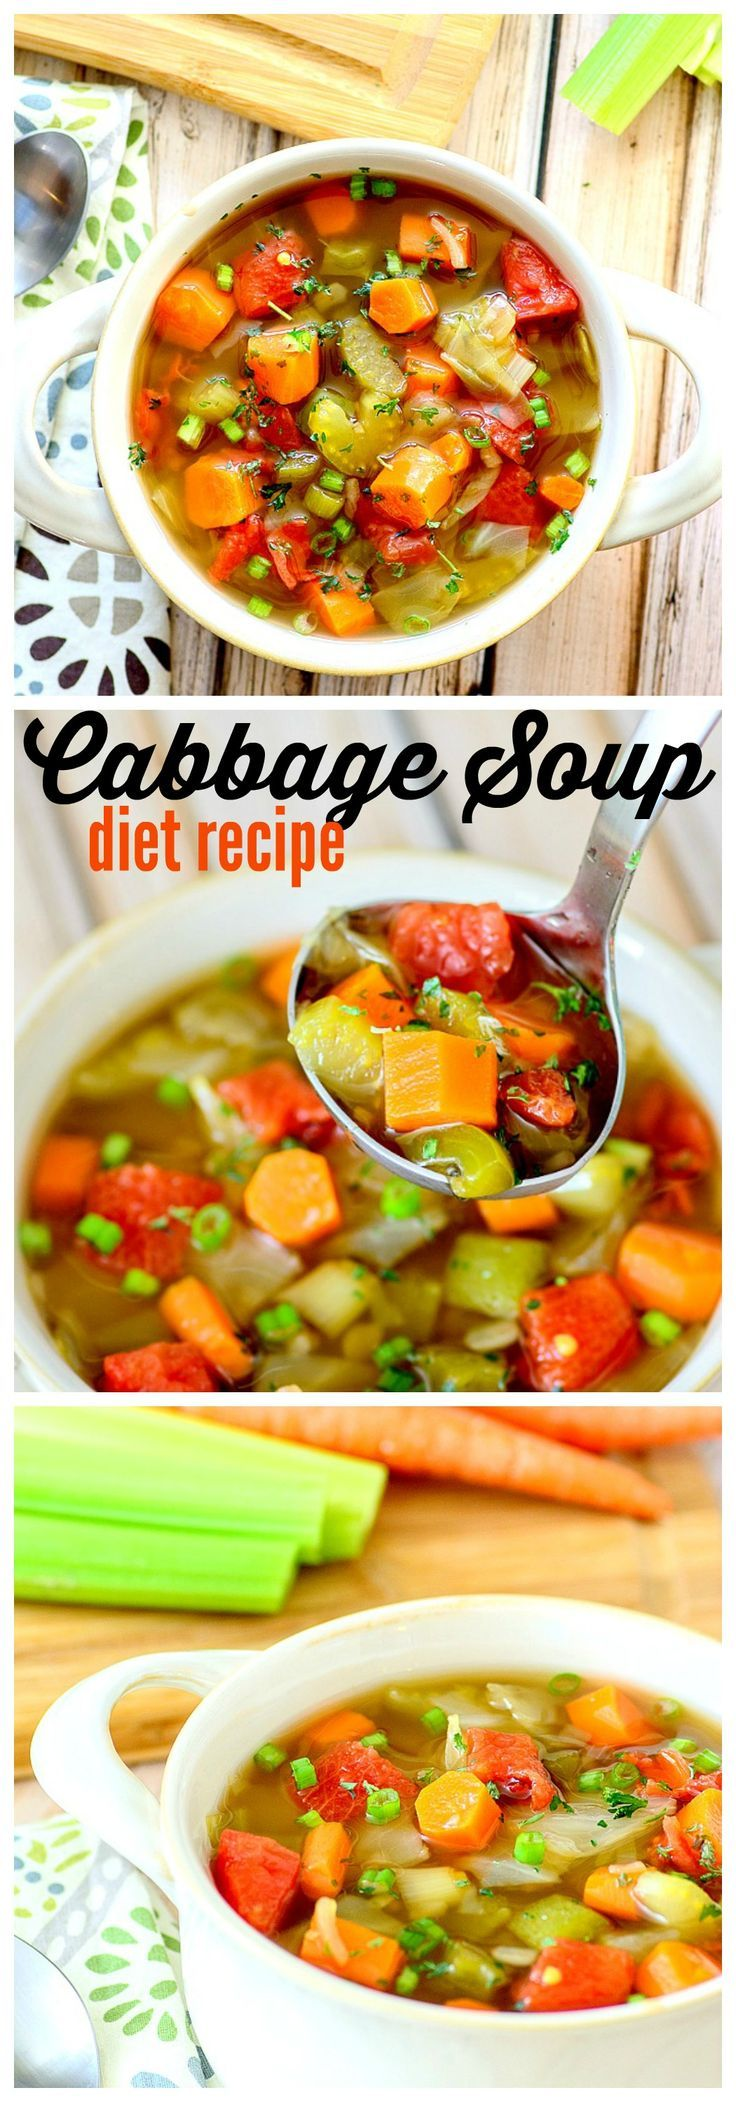 Cabbage soup diet or Dolly Parton Diet is a great way to lose weight, grab the Cabbage Soup Diet recipe a delicious soup that will get your body on track